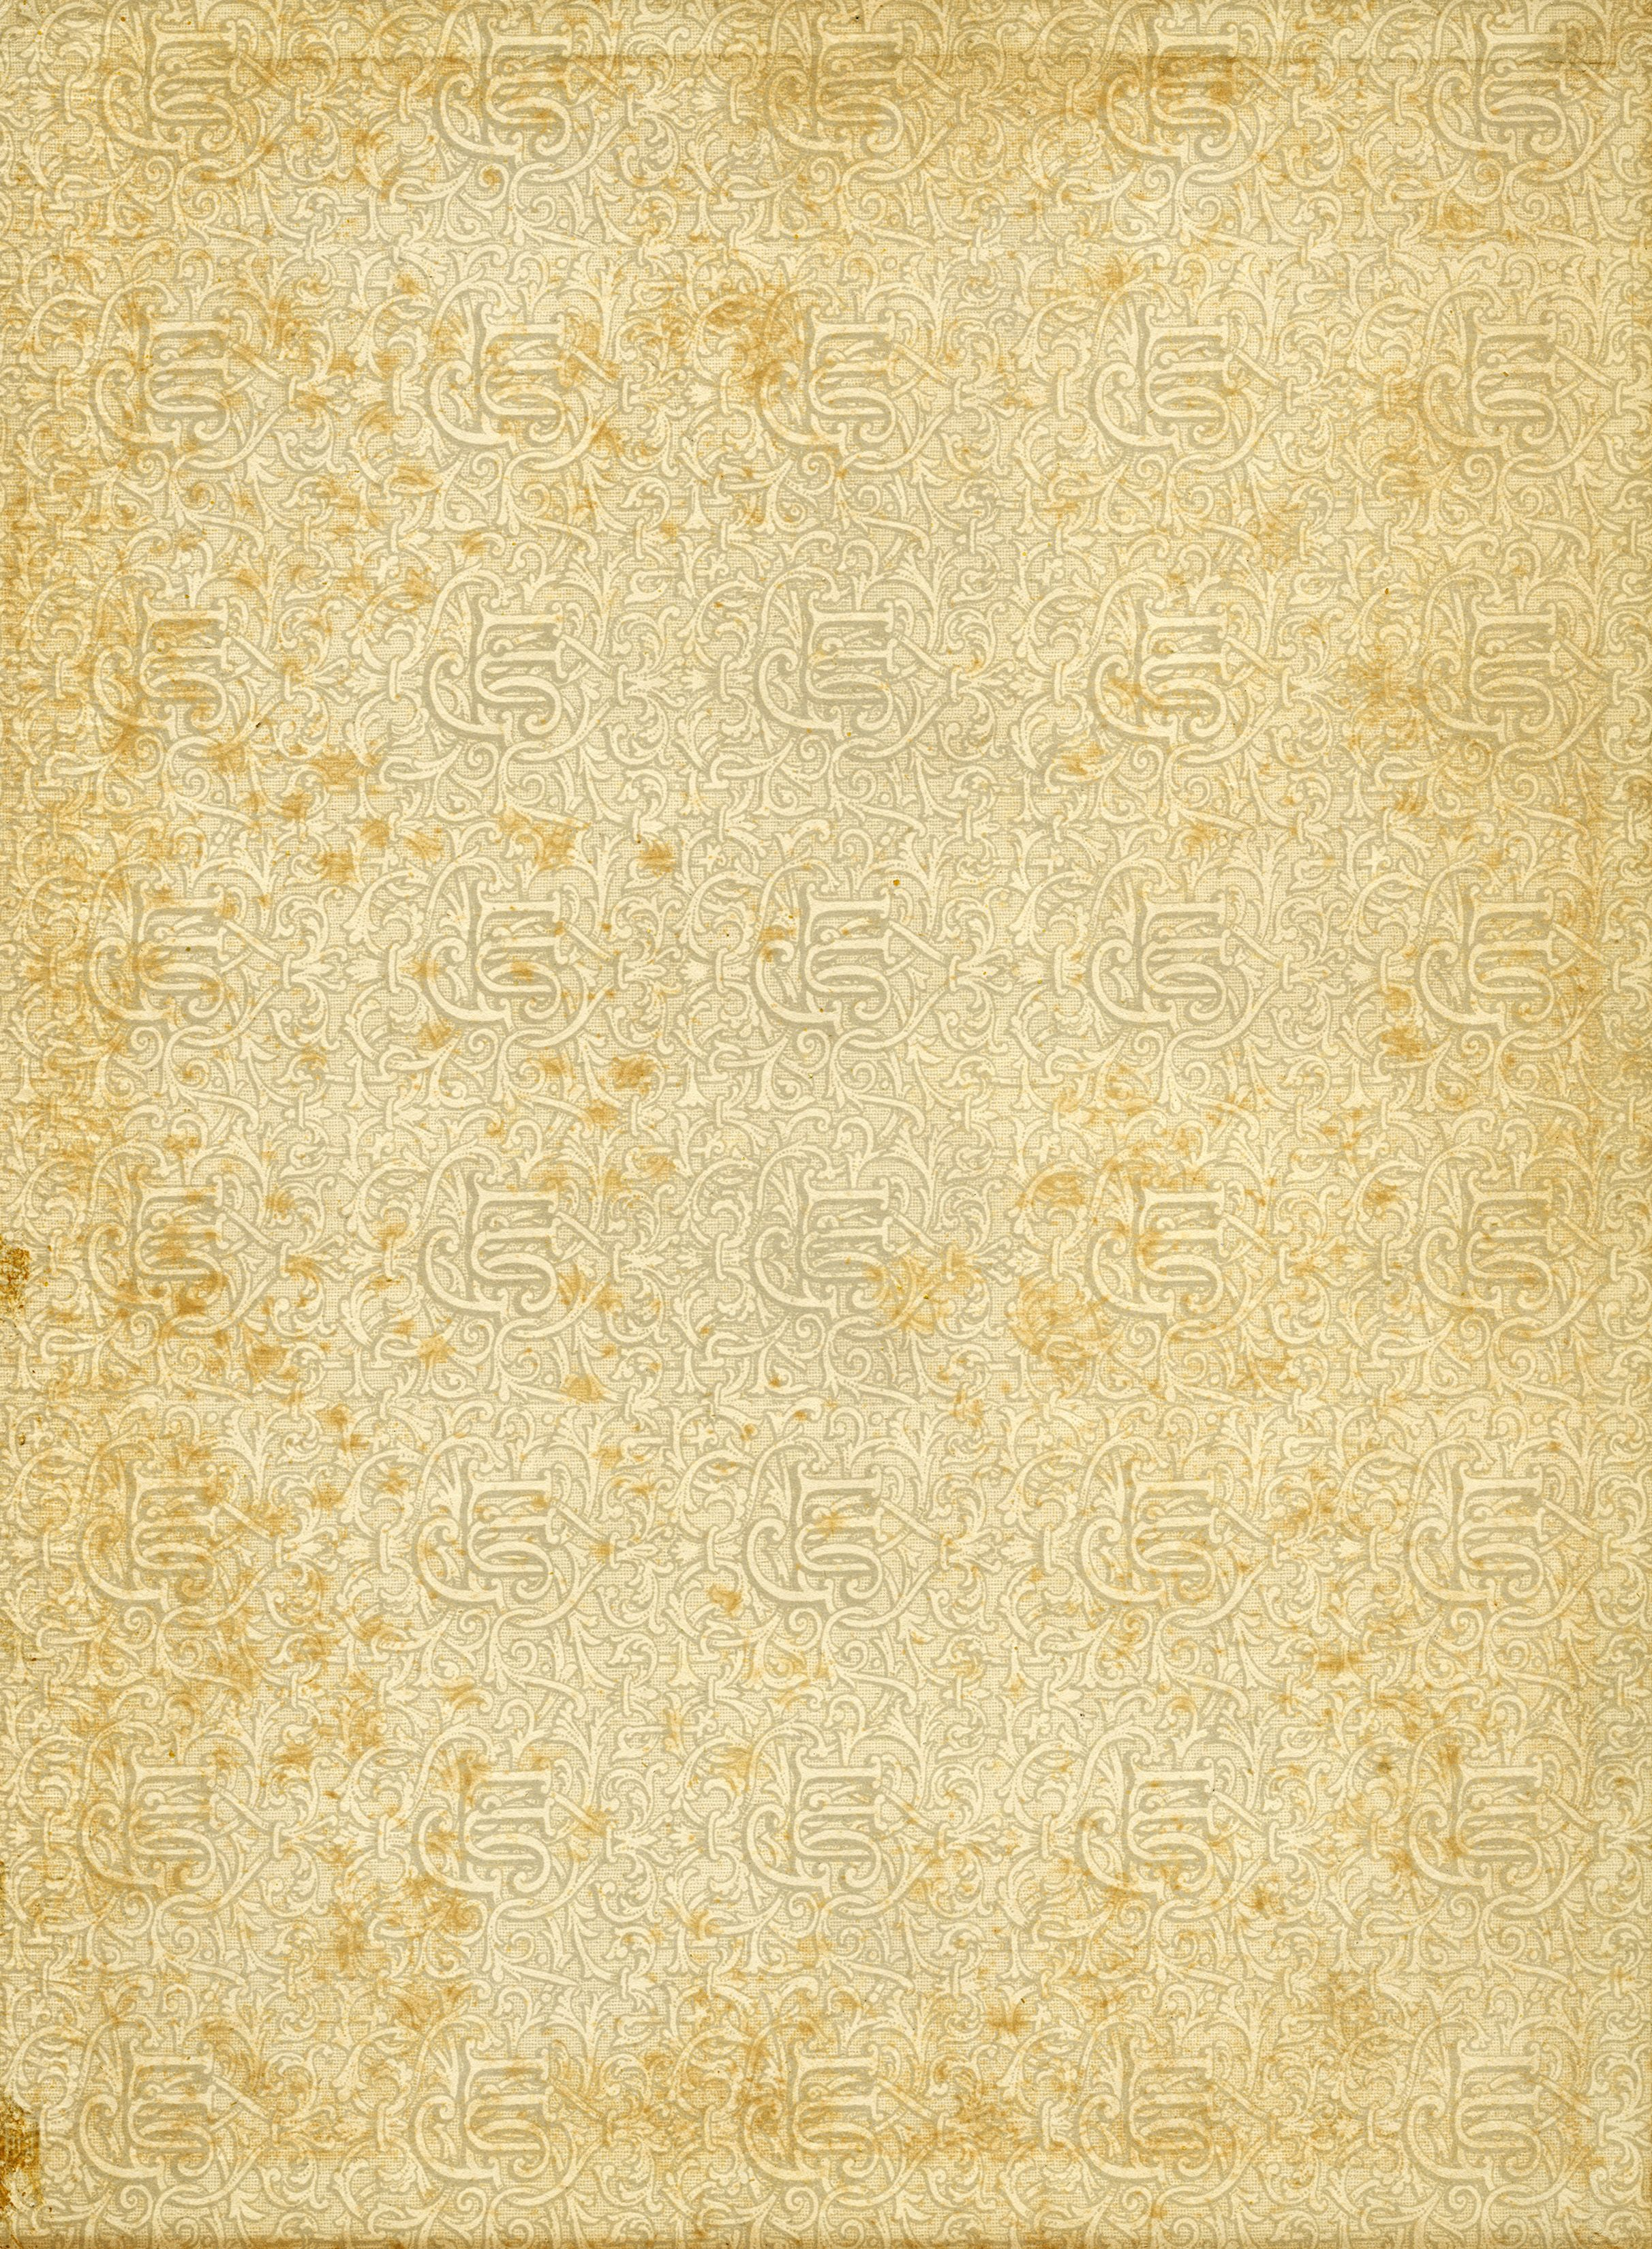 Old Paper Texture Background Free Image Vintage Paper Background Old Paper Background Vintage Paper Textures